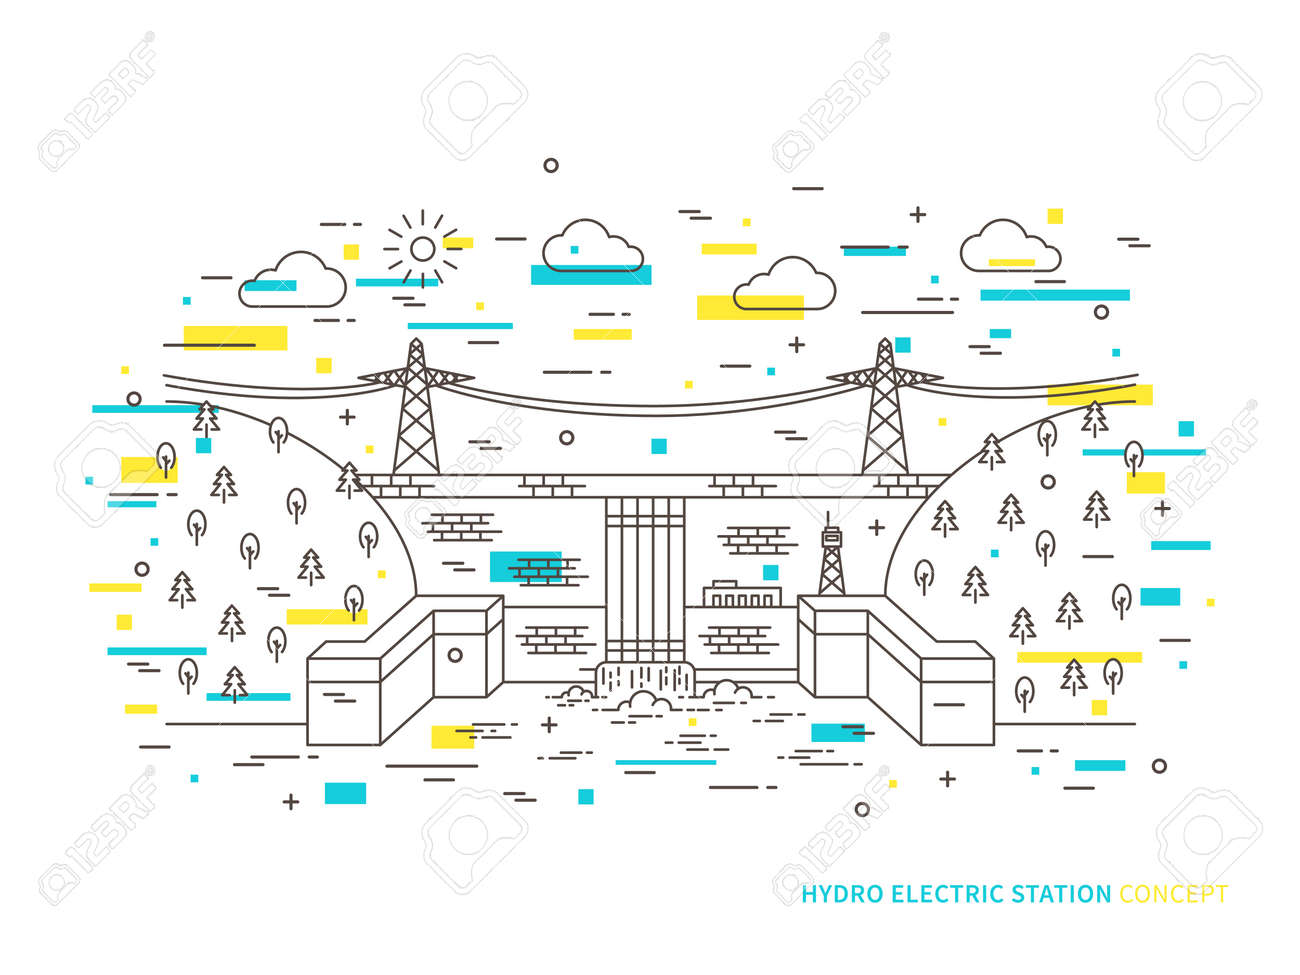 hight resolution of linear hydro electric station hydroelectric power plant vector illustration hydro power engineering waterpower plant creative